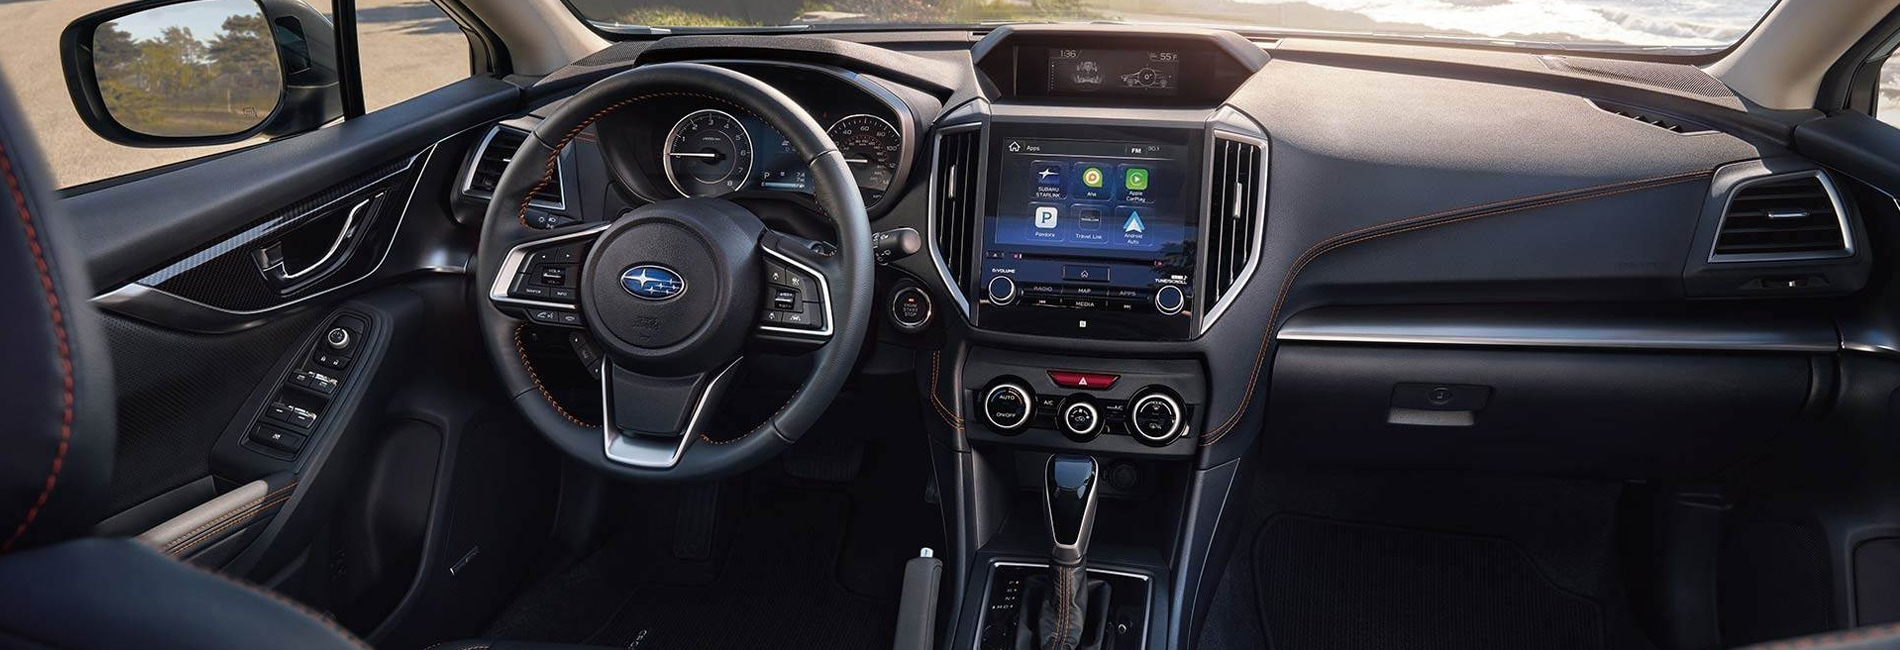 2019 Subaru Crosstrek Interior Features